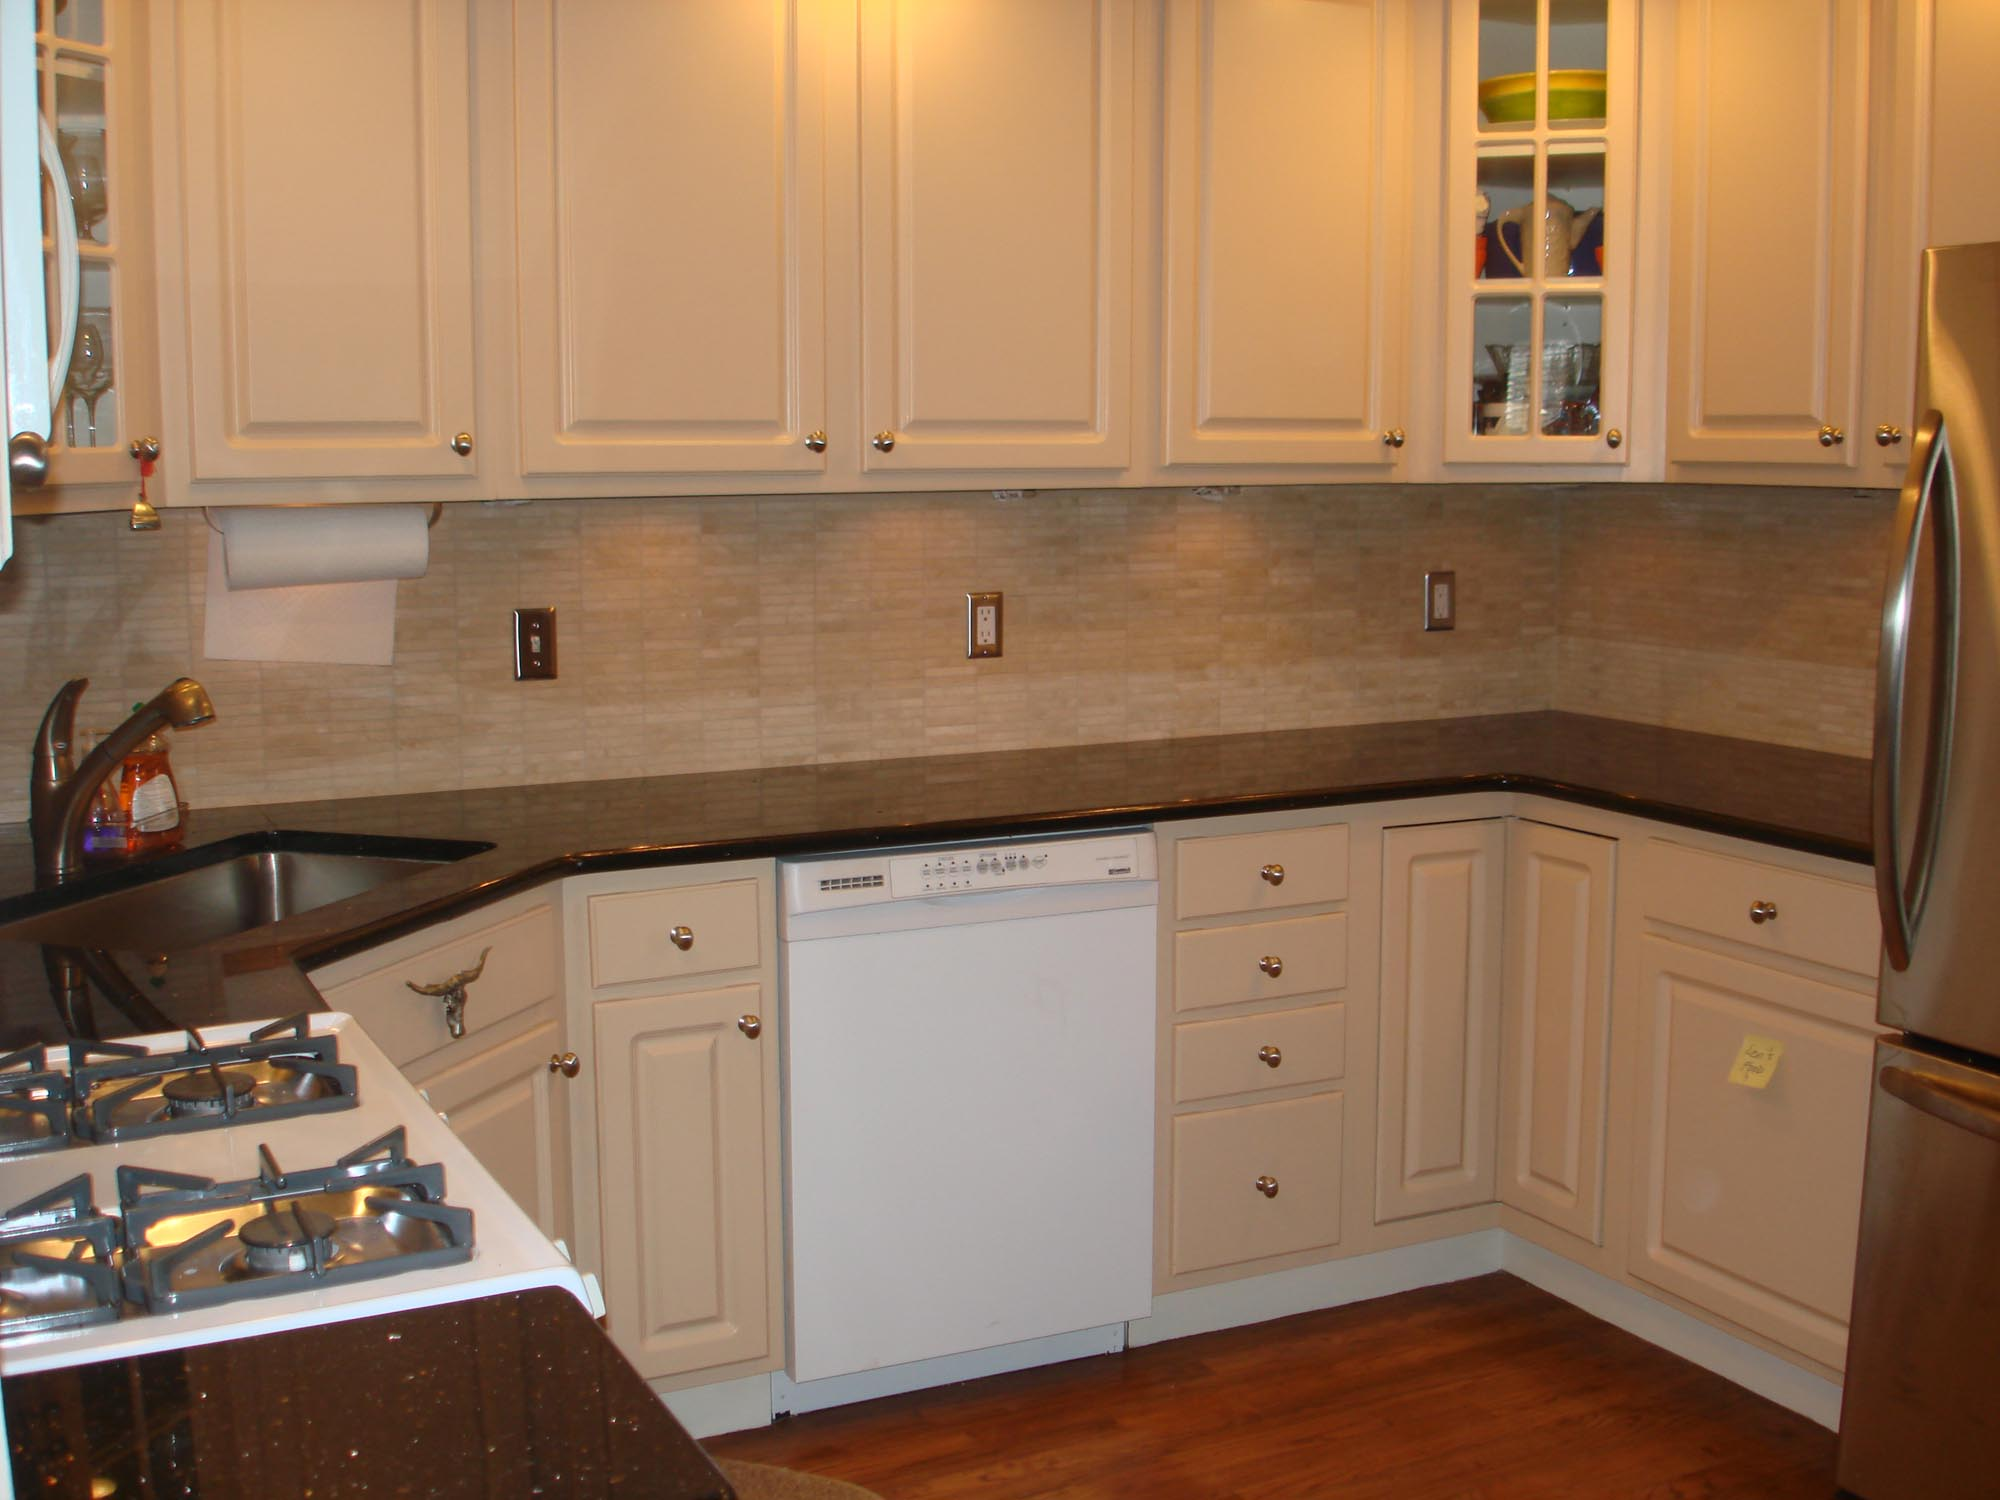 Marble mossaic kitchen backsplash new jersey custom tile - Custom kitchen backsplash tiles ...